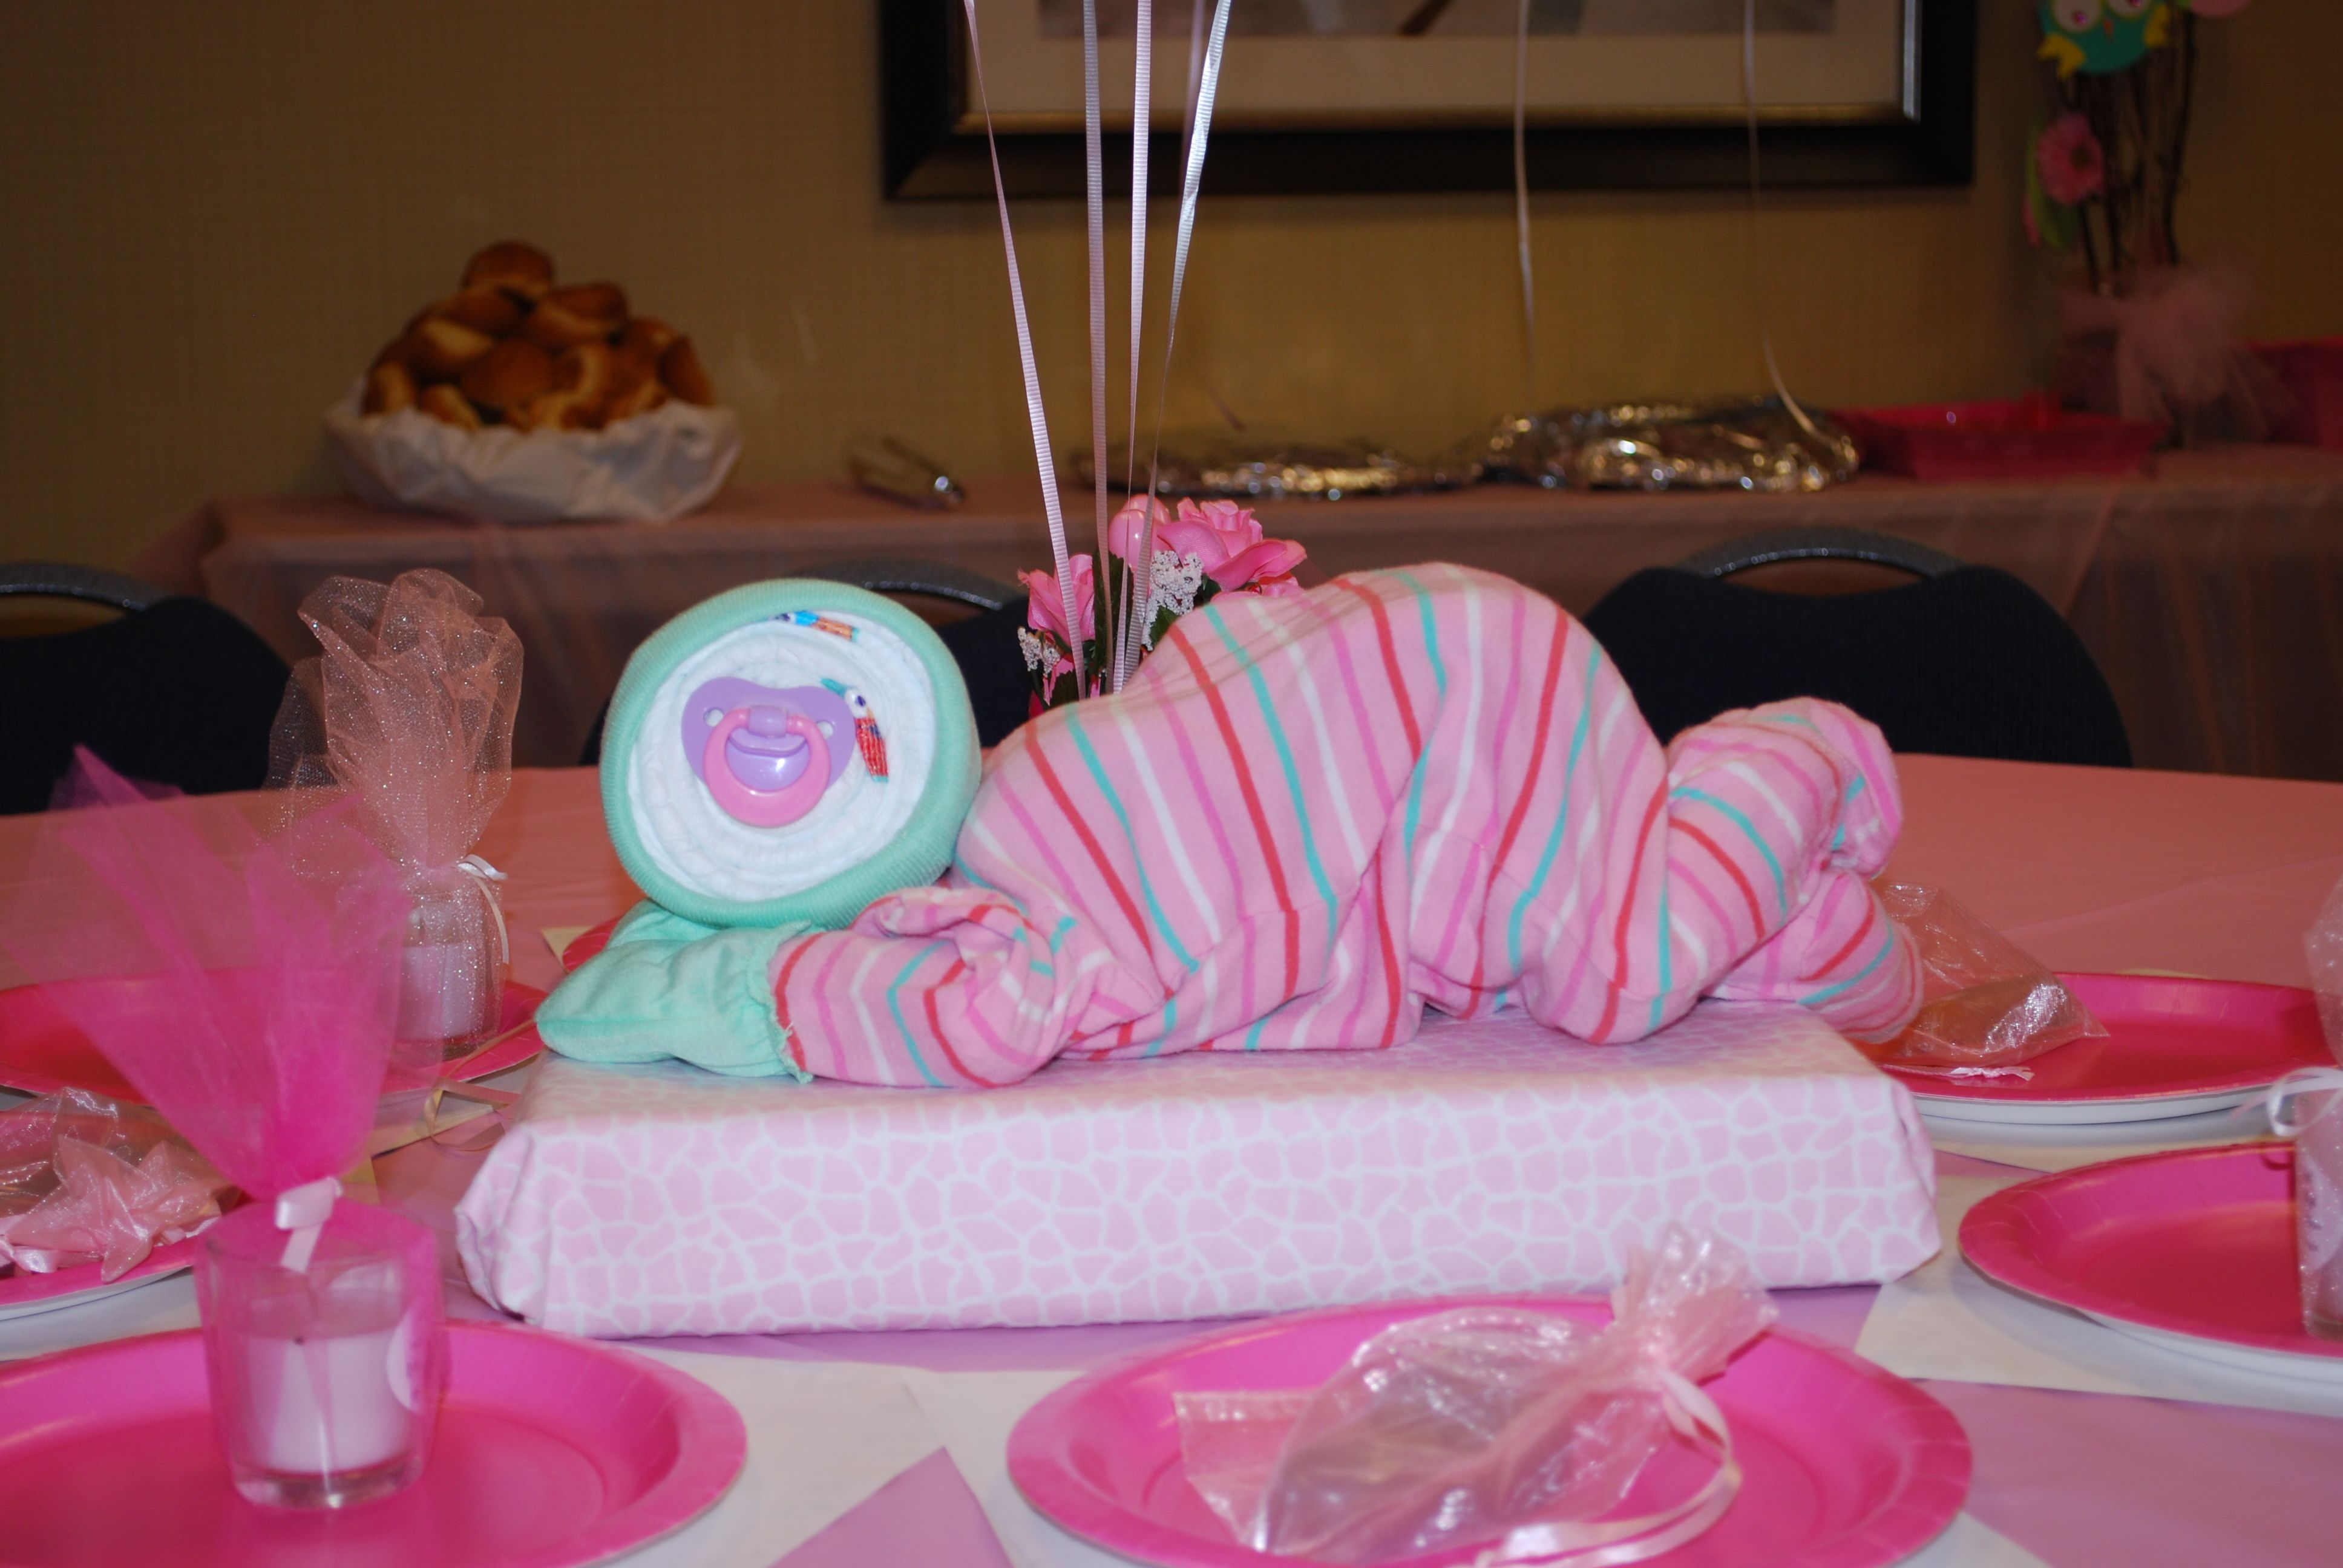 i loved the baby center pieces.  also, all the ITEMS FOR THE GAMES WERE PUT ON THE TABLE BEFORE GUEST ARRIVED.  time saver